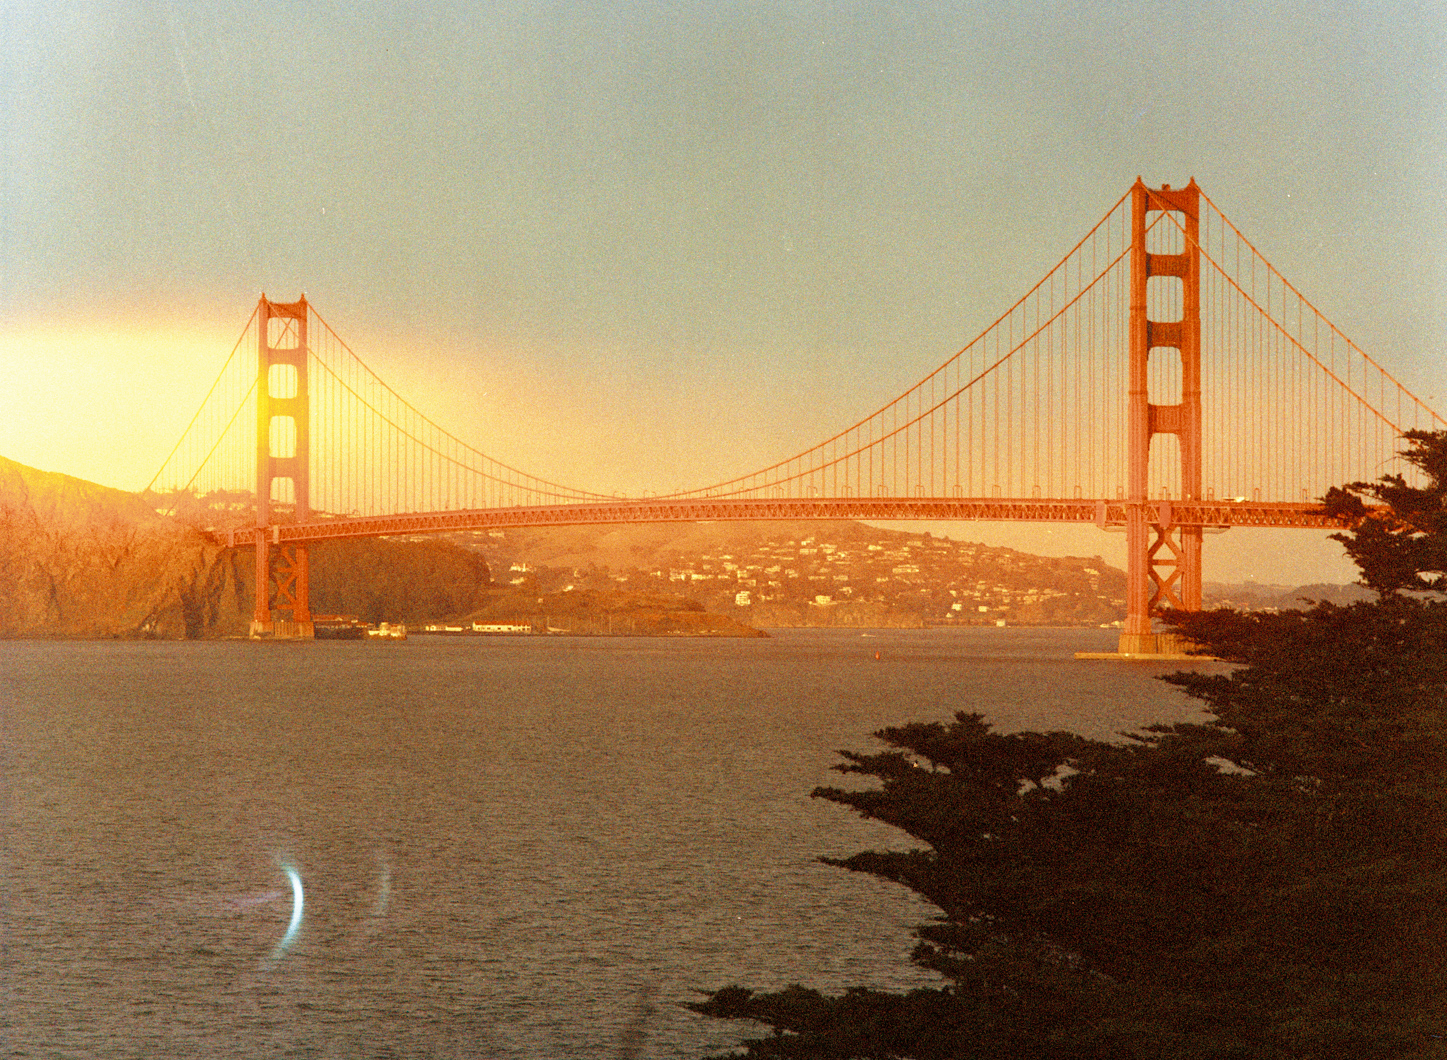 Golden Gate Bridge - Analog Travel Photographer Charlie Sin